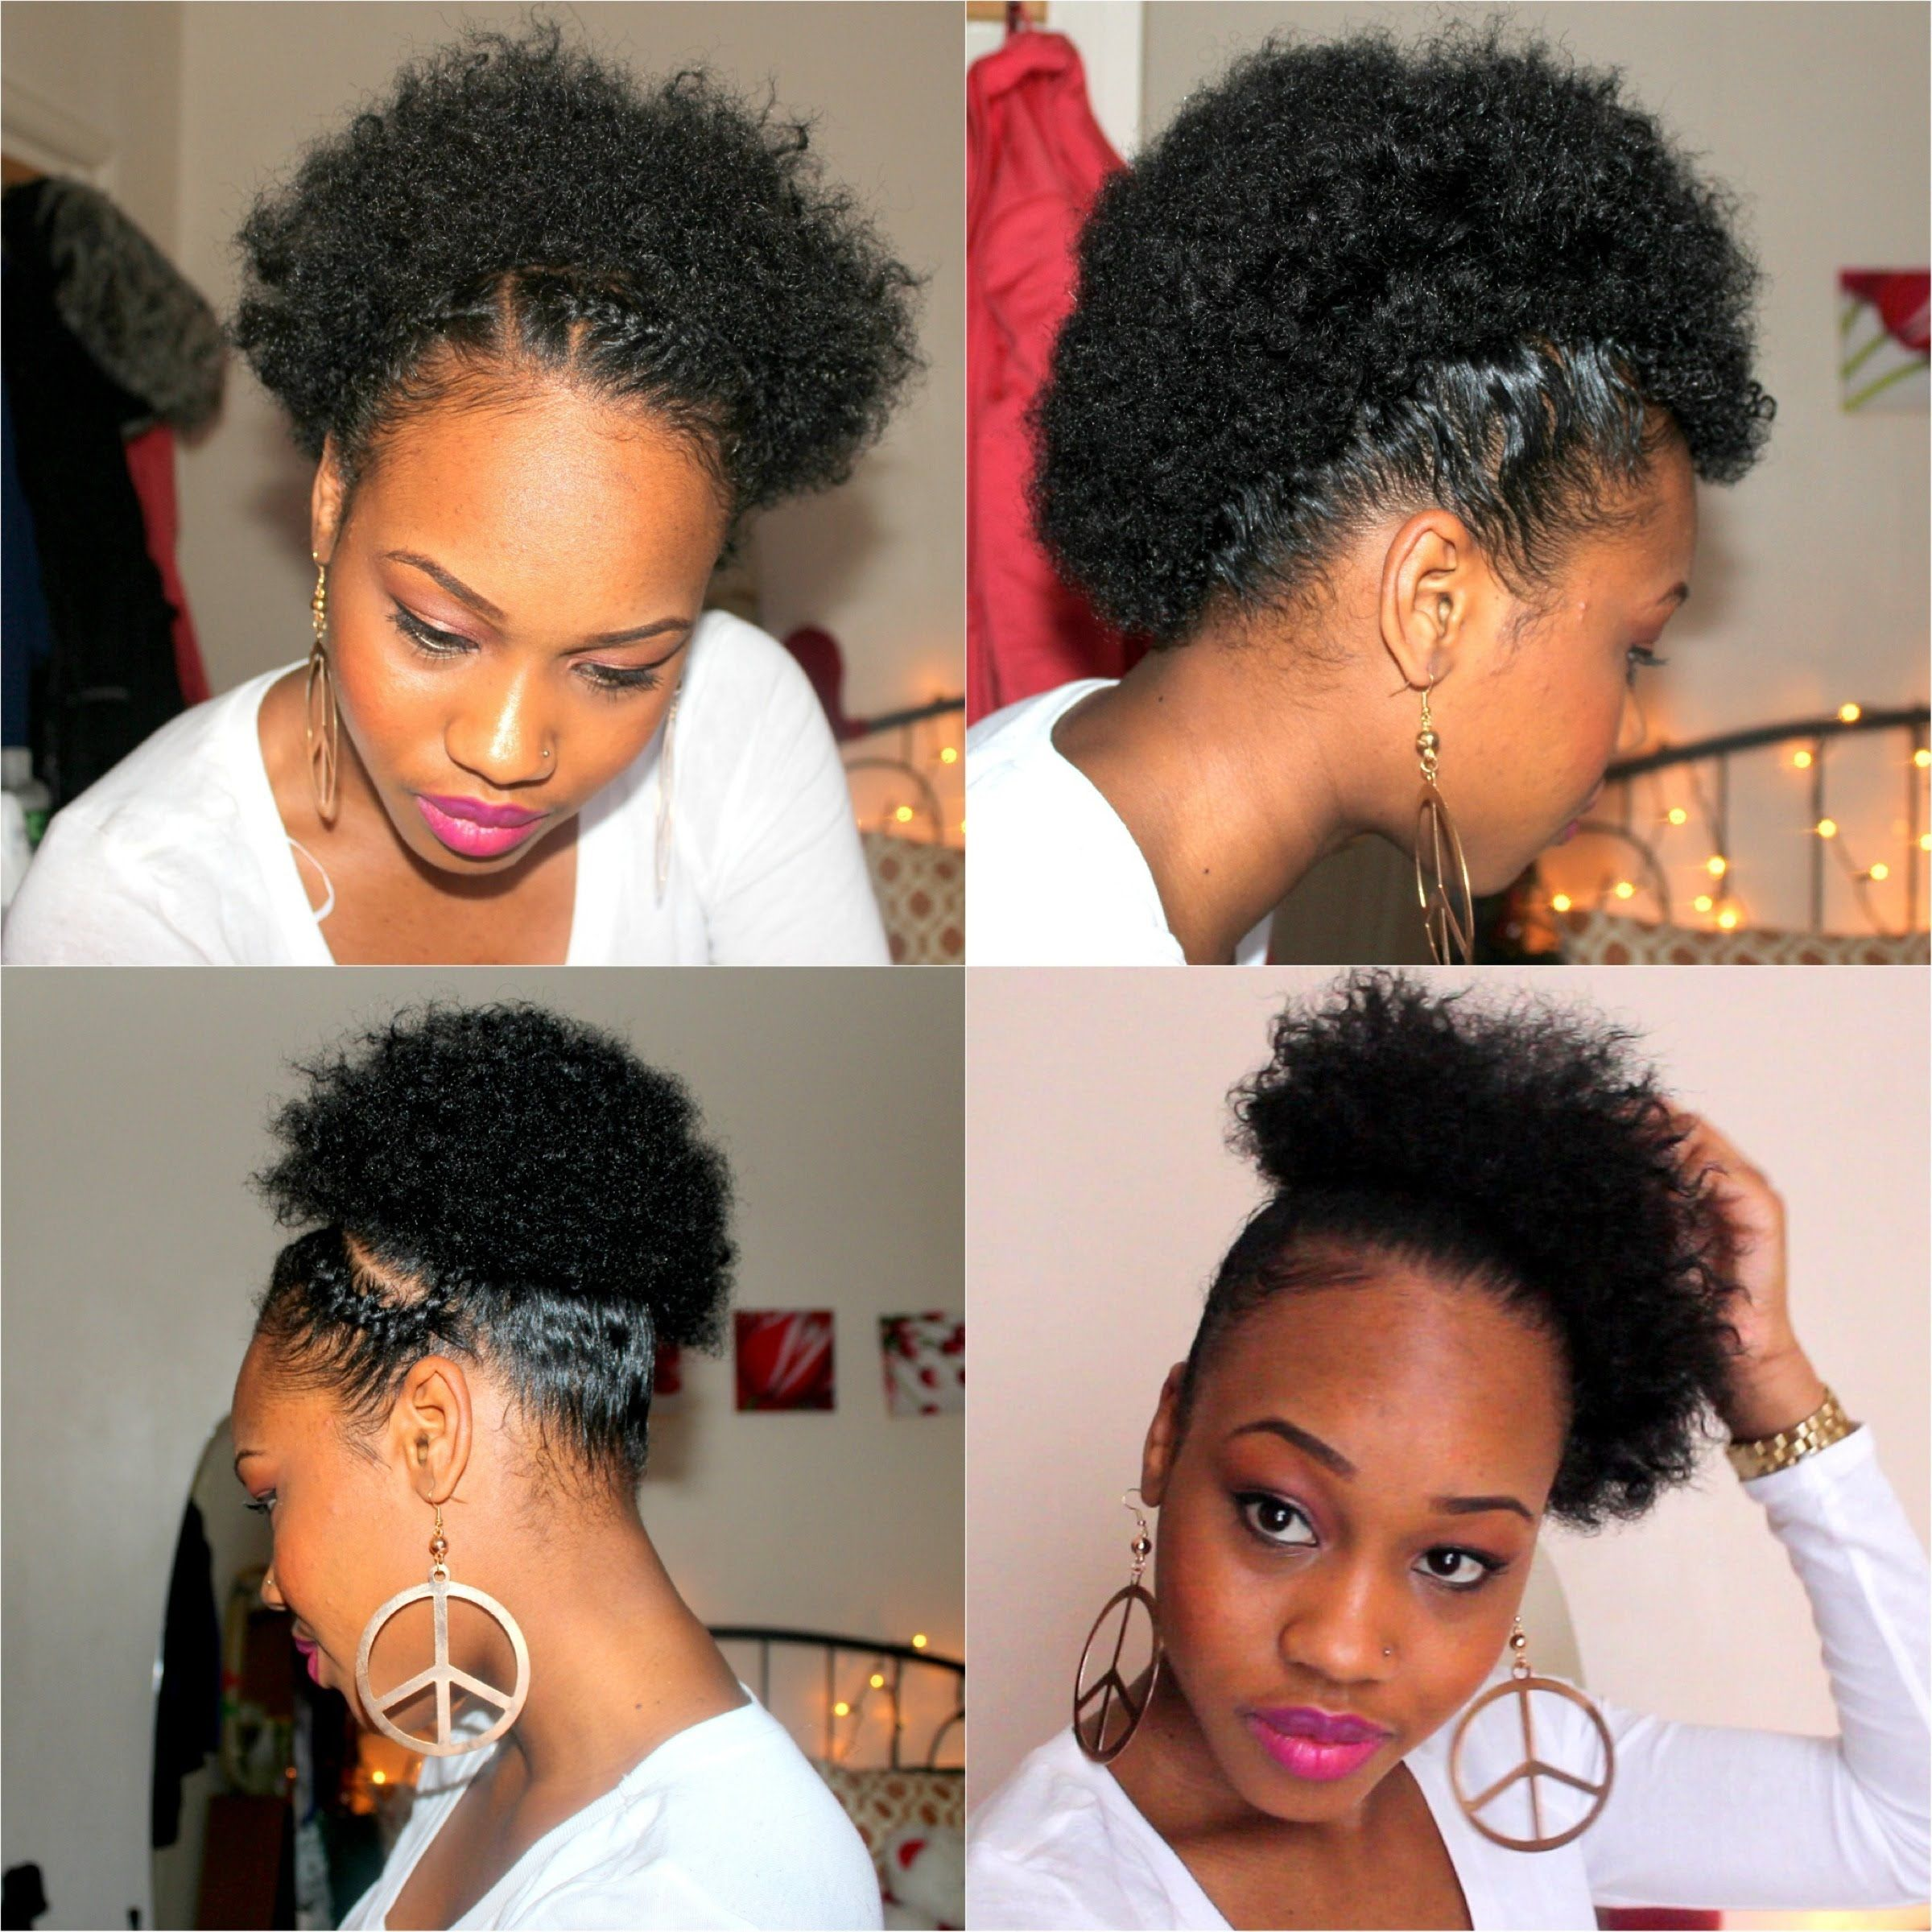 21 Four Quick Easy Styles For Short Natural Hair Short Natural Hair Styles Short Hair Styles Easy Hair Styles